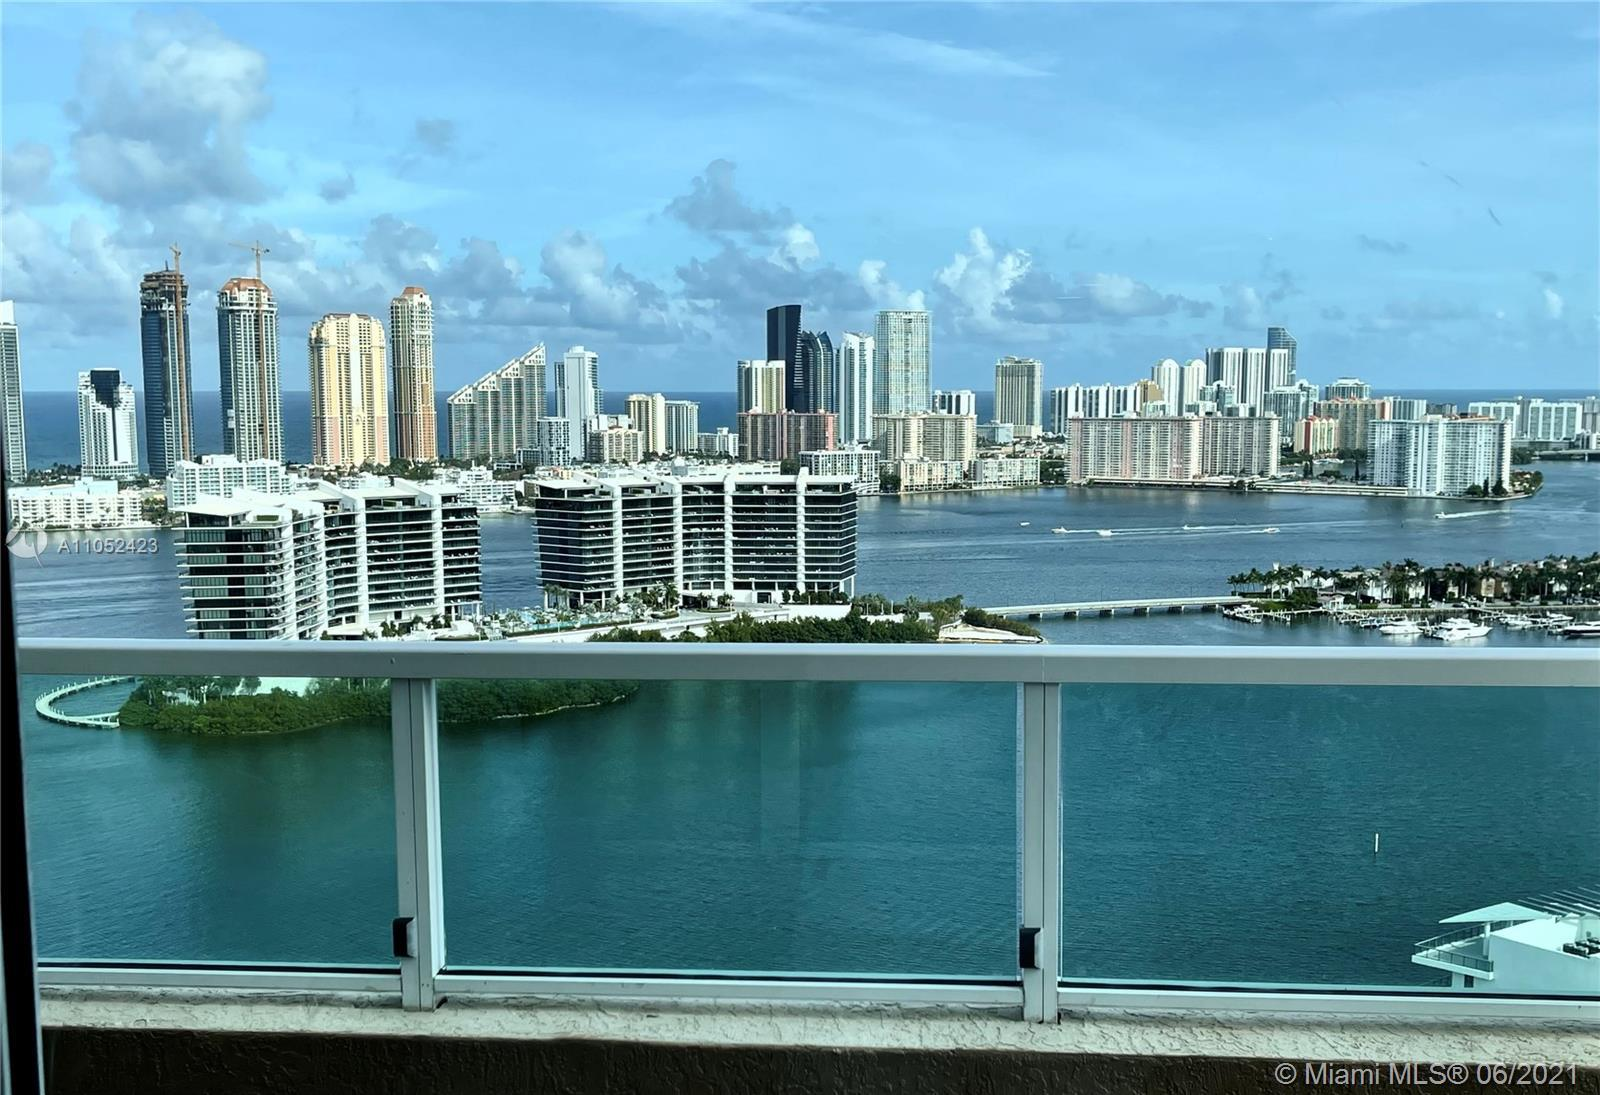 JUST FULLY REMODELED DESIGN TURNKEY UPPER PENTHOUSE LOCATED IN THE HEART OF AVENTURA! THIS LARGE 3 B